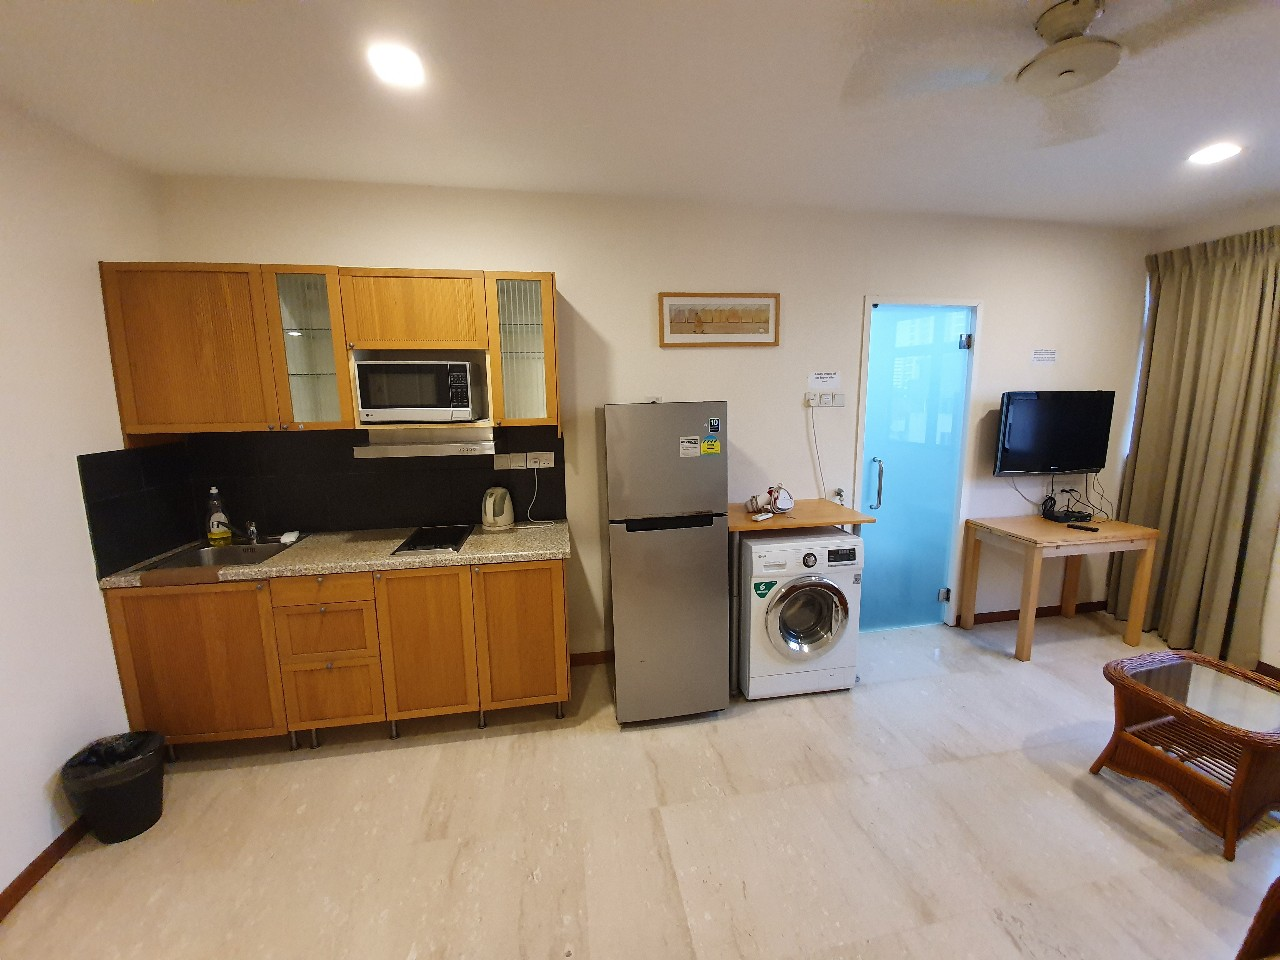 Crescent building, Studio apartment, hostel, short term rental, balestier road